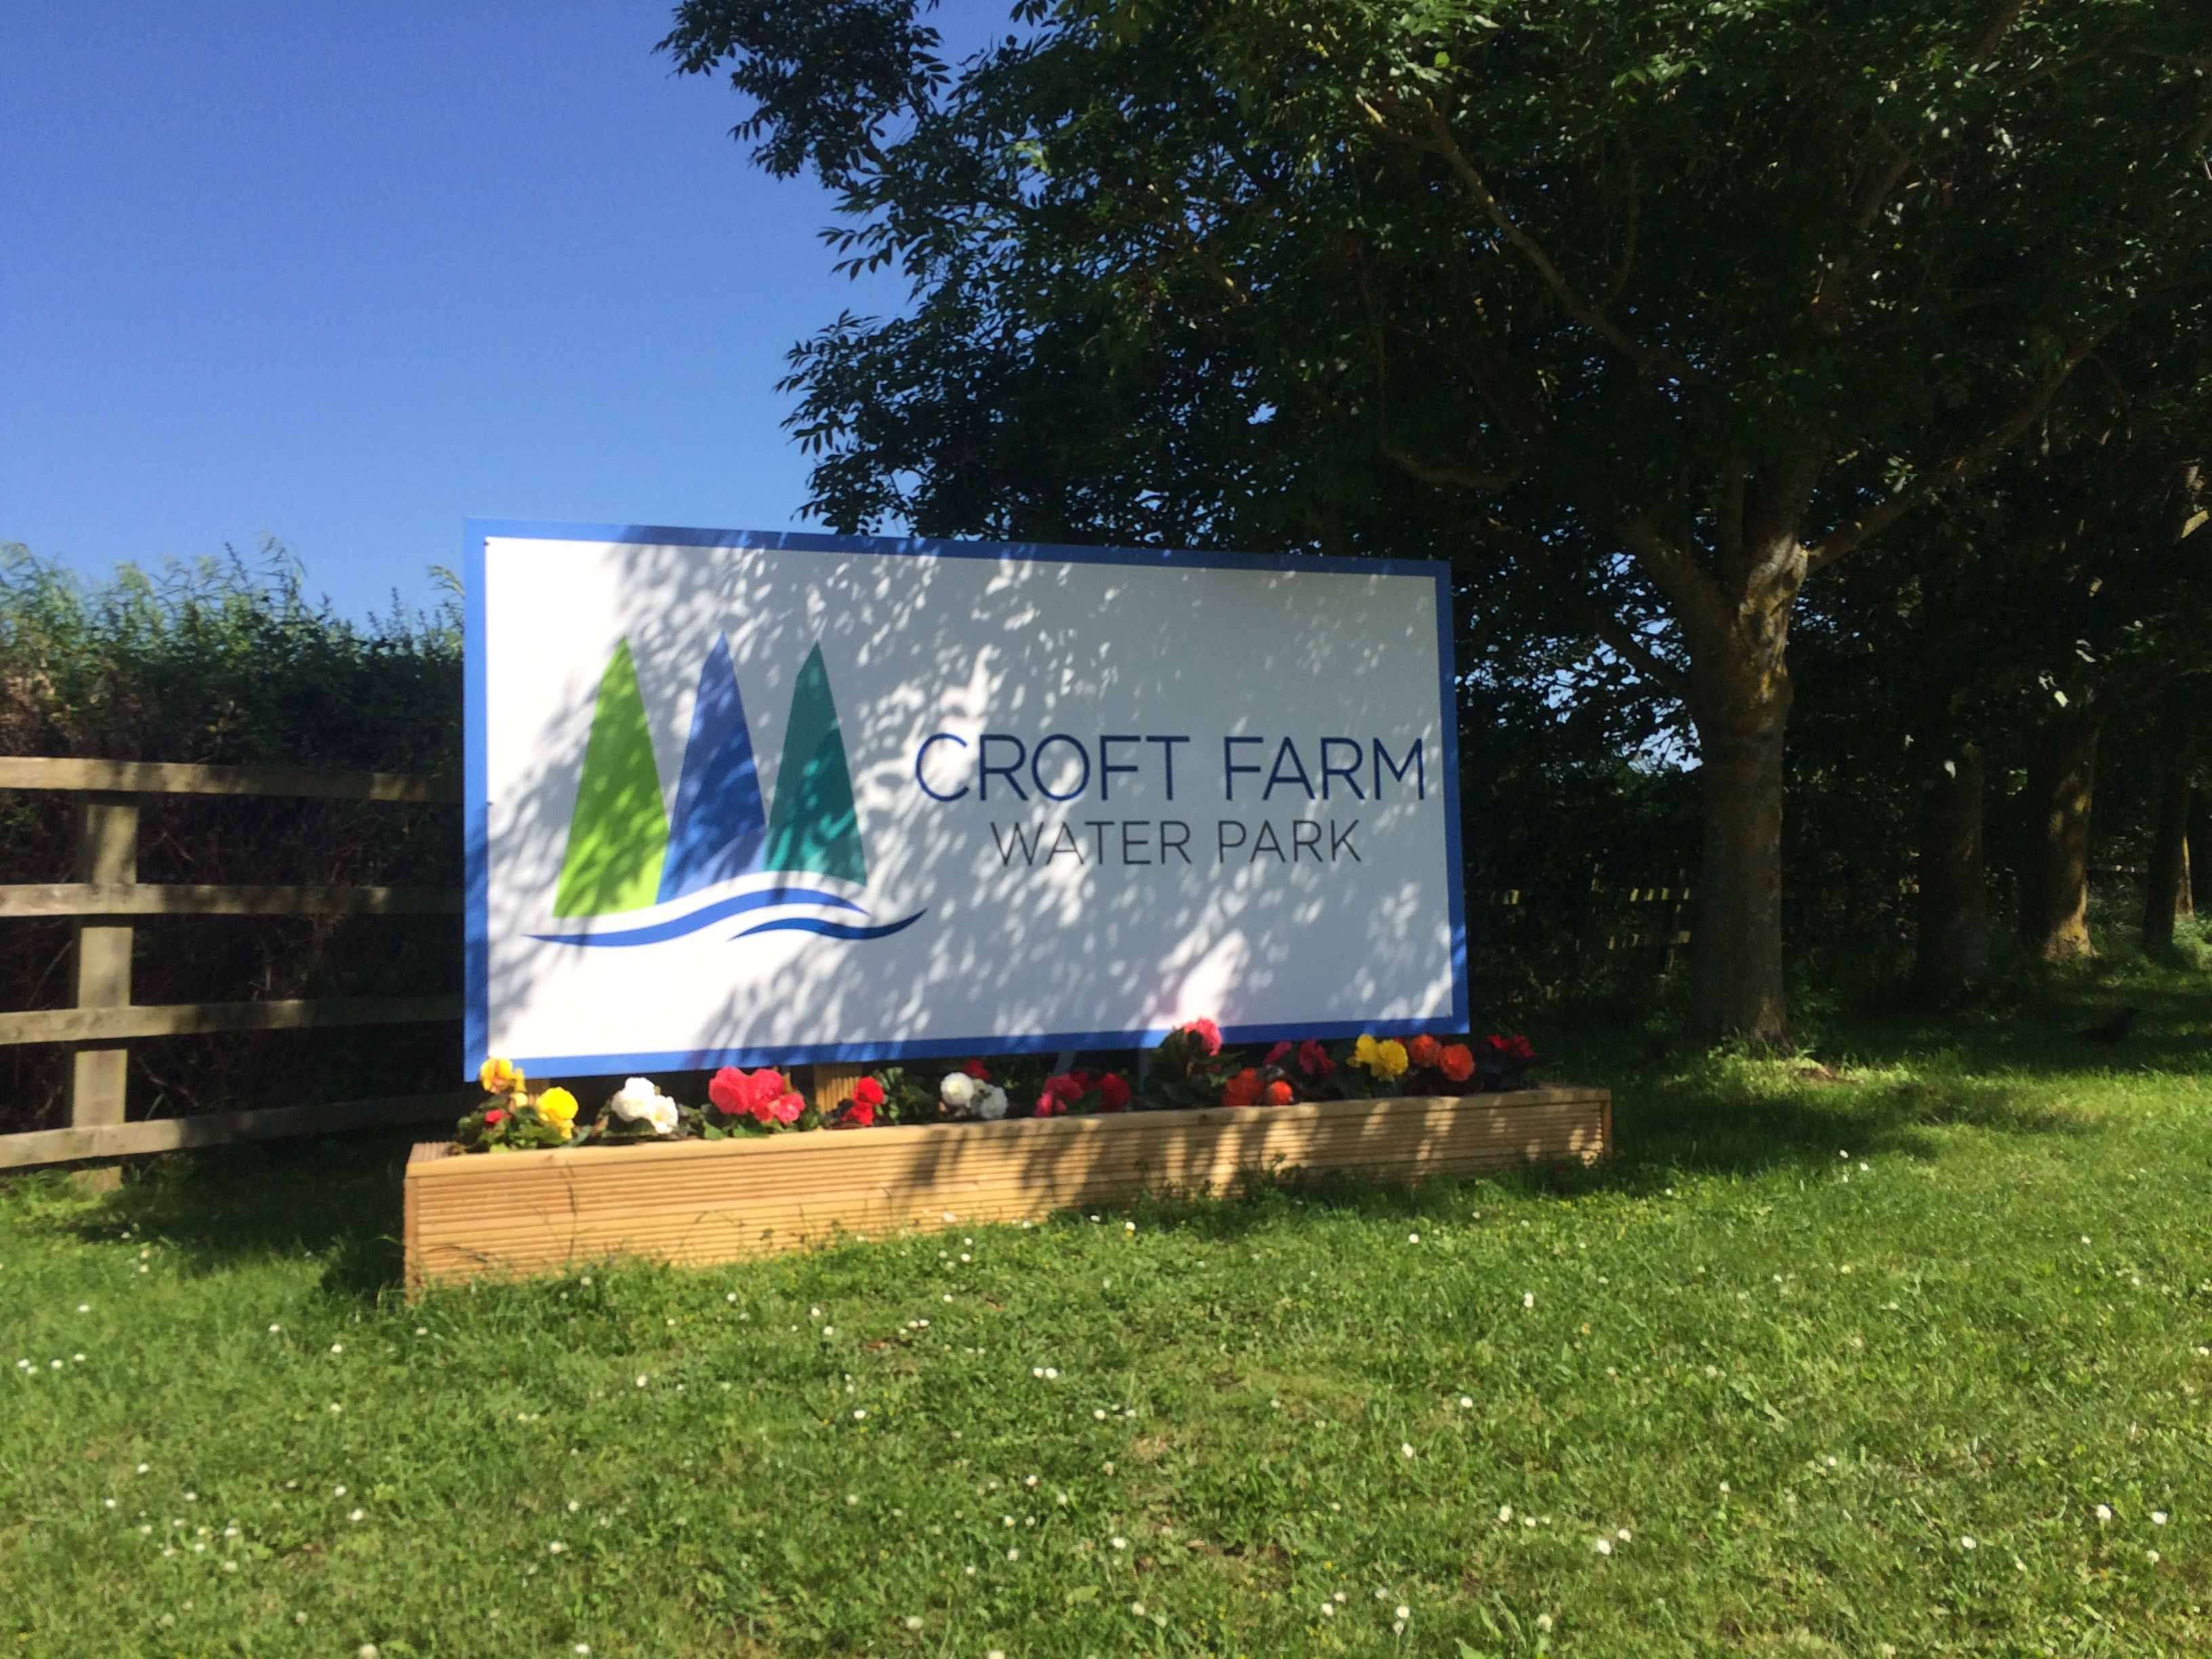 Welcome sign for Croft Farm Waterpark